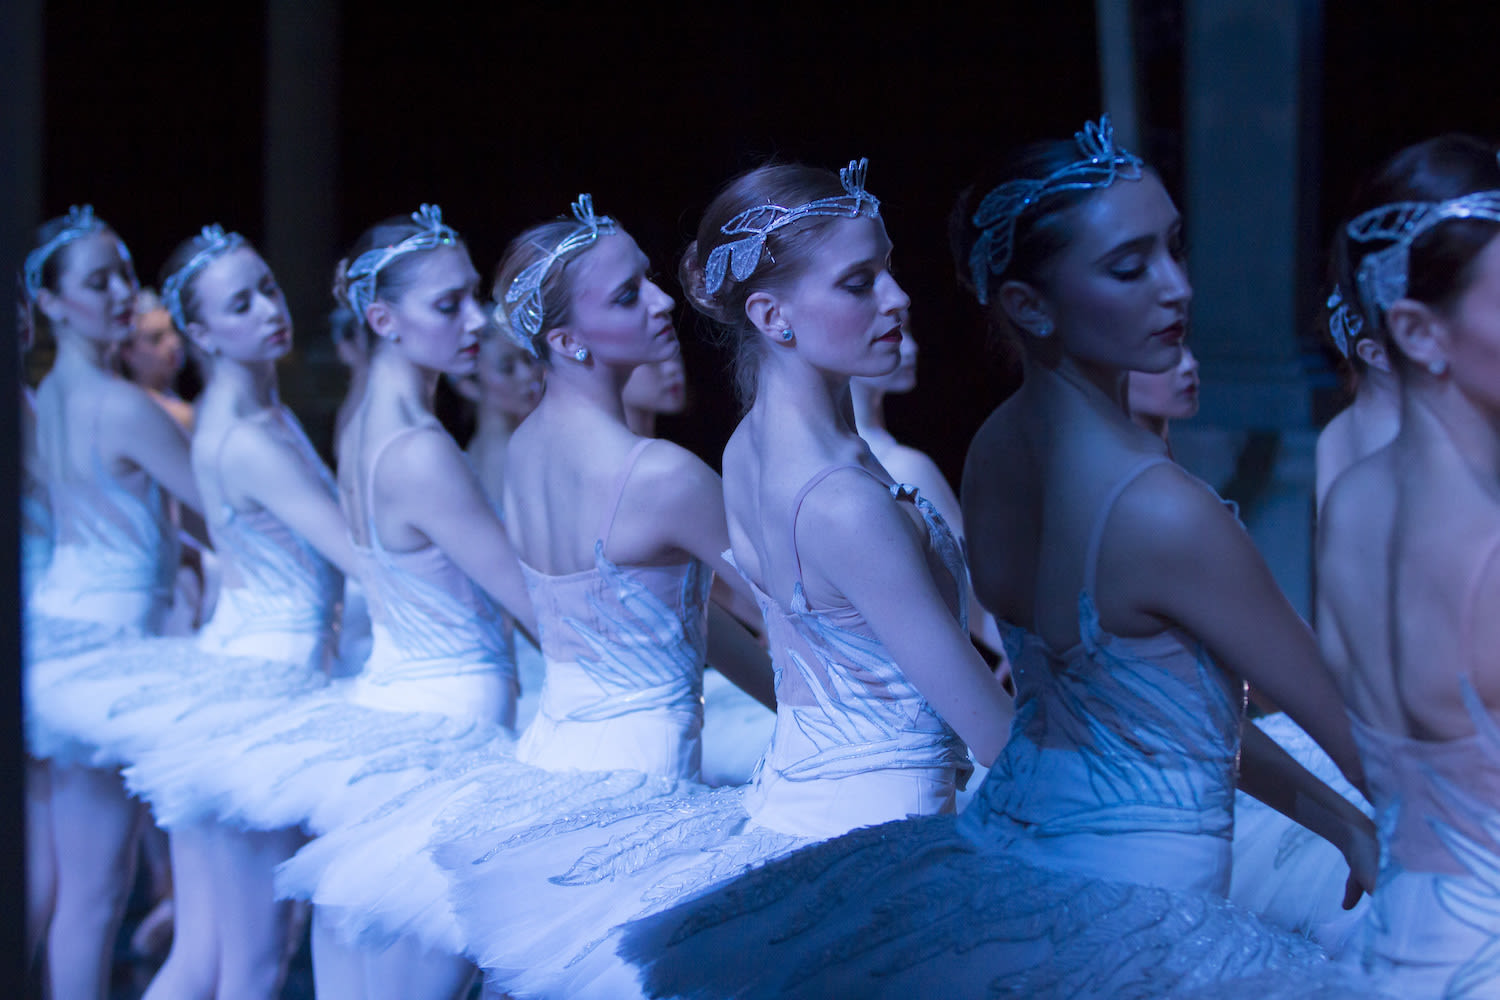 Swanlake2015 corps lt 152rawedit vbgjd1